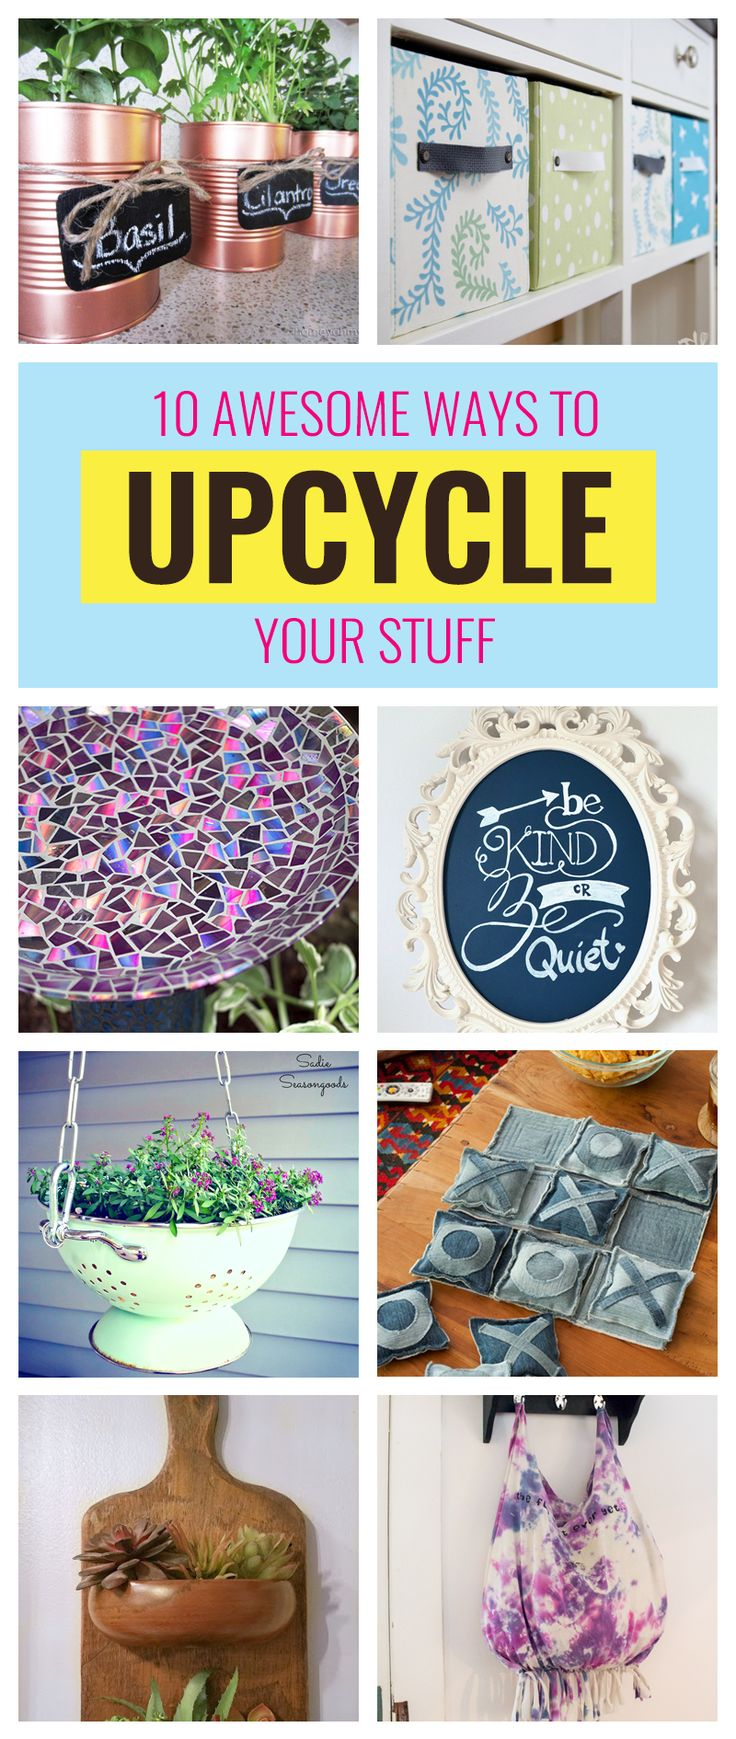 10 Awesome Upcycle Ideas to Celebrate Earth Day